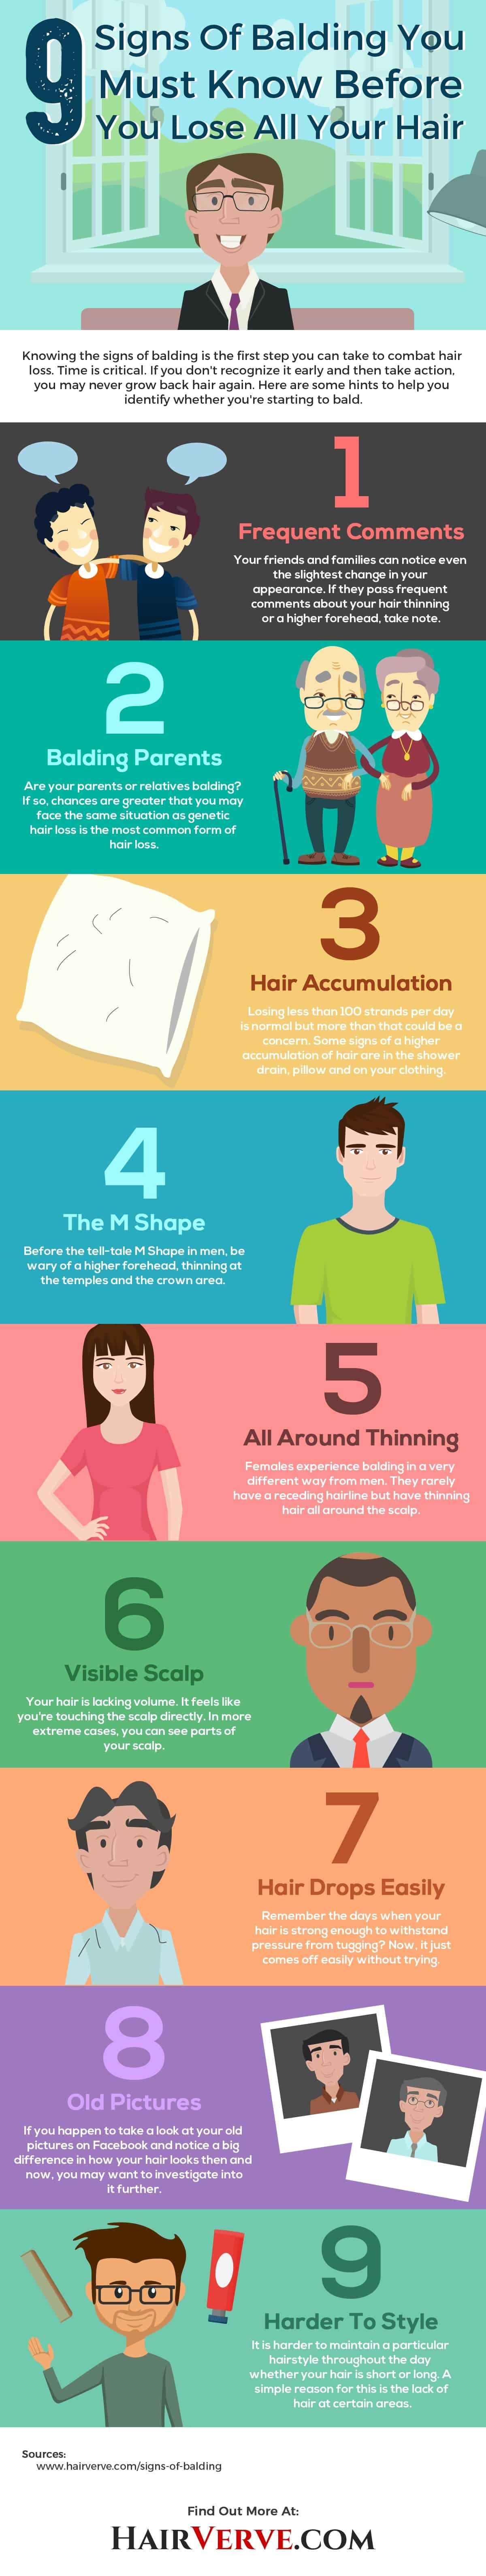 9 signs of balding in men